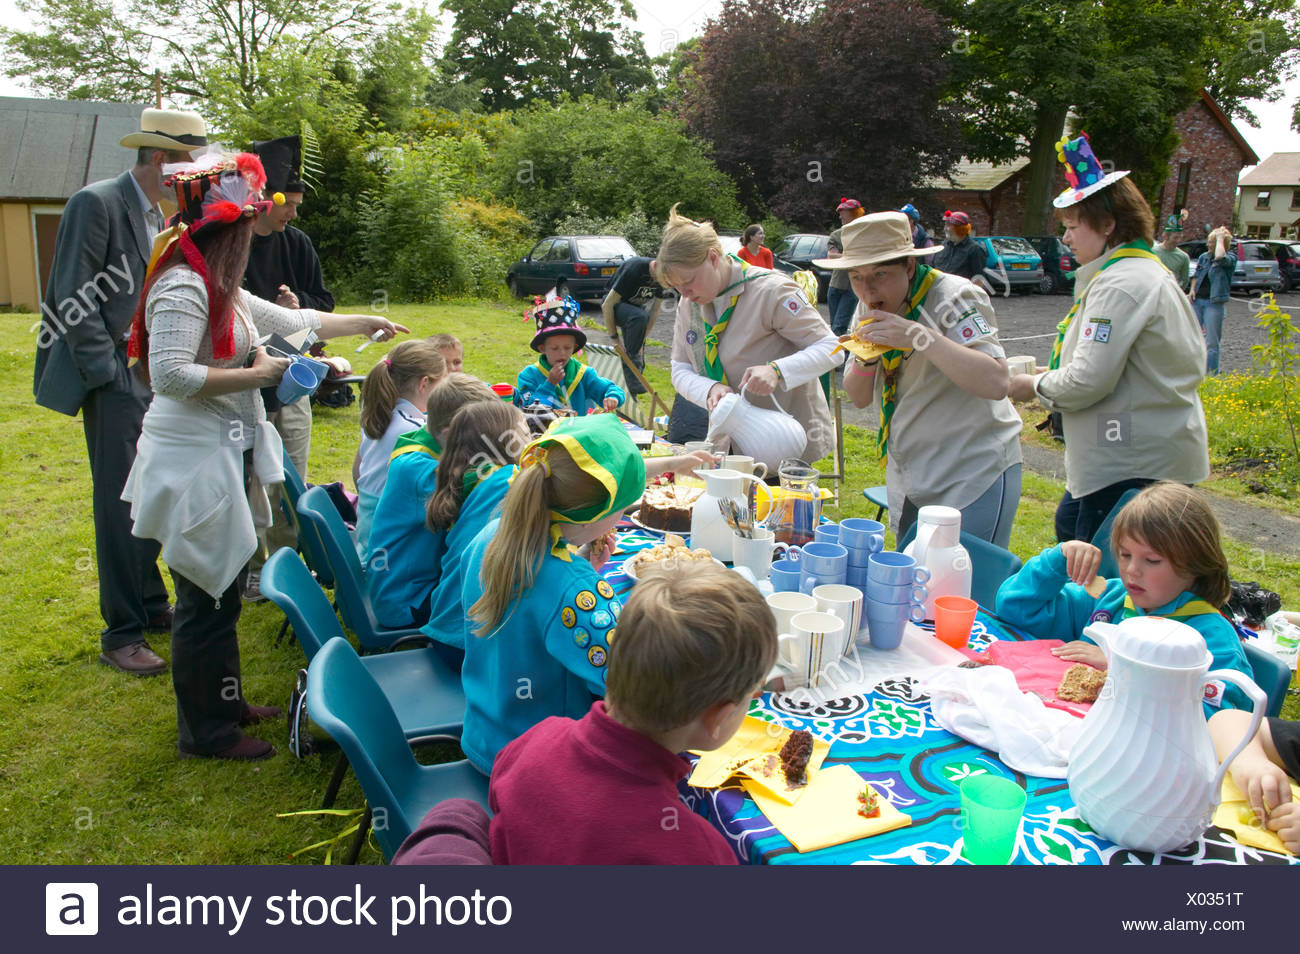 Scouts and cubs enjoying a mad hatters tea party at a countryside event - Stock Image